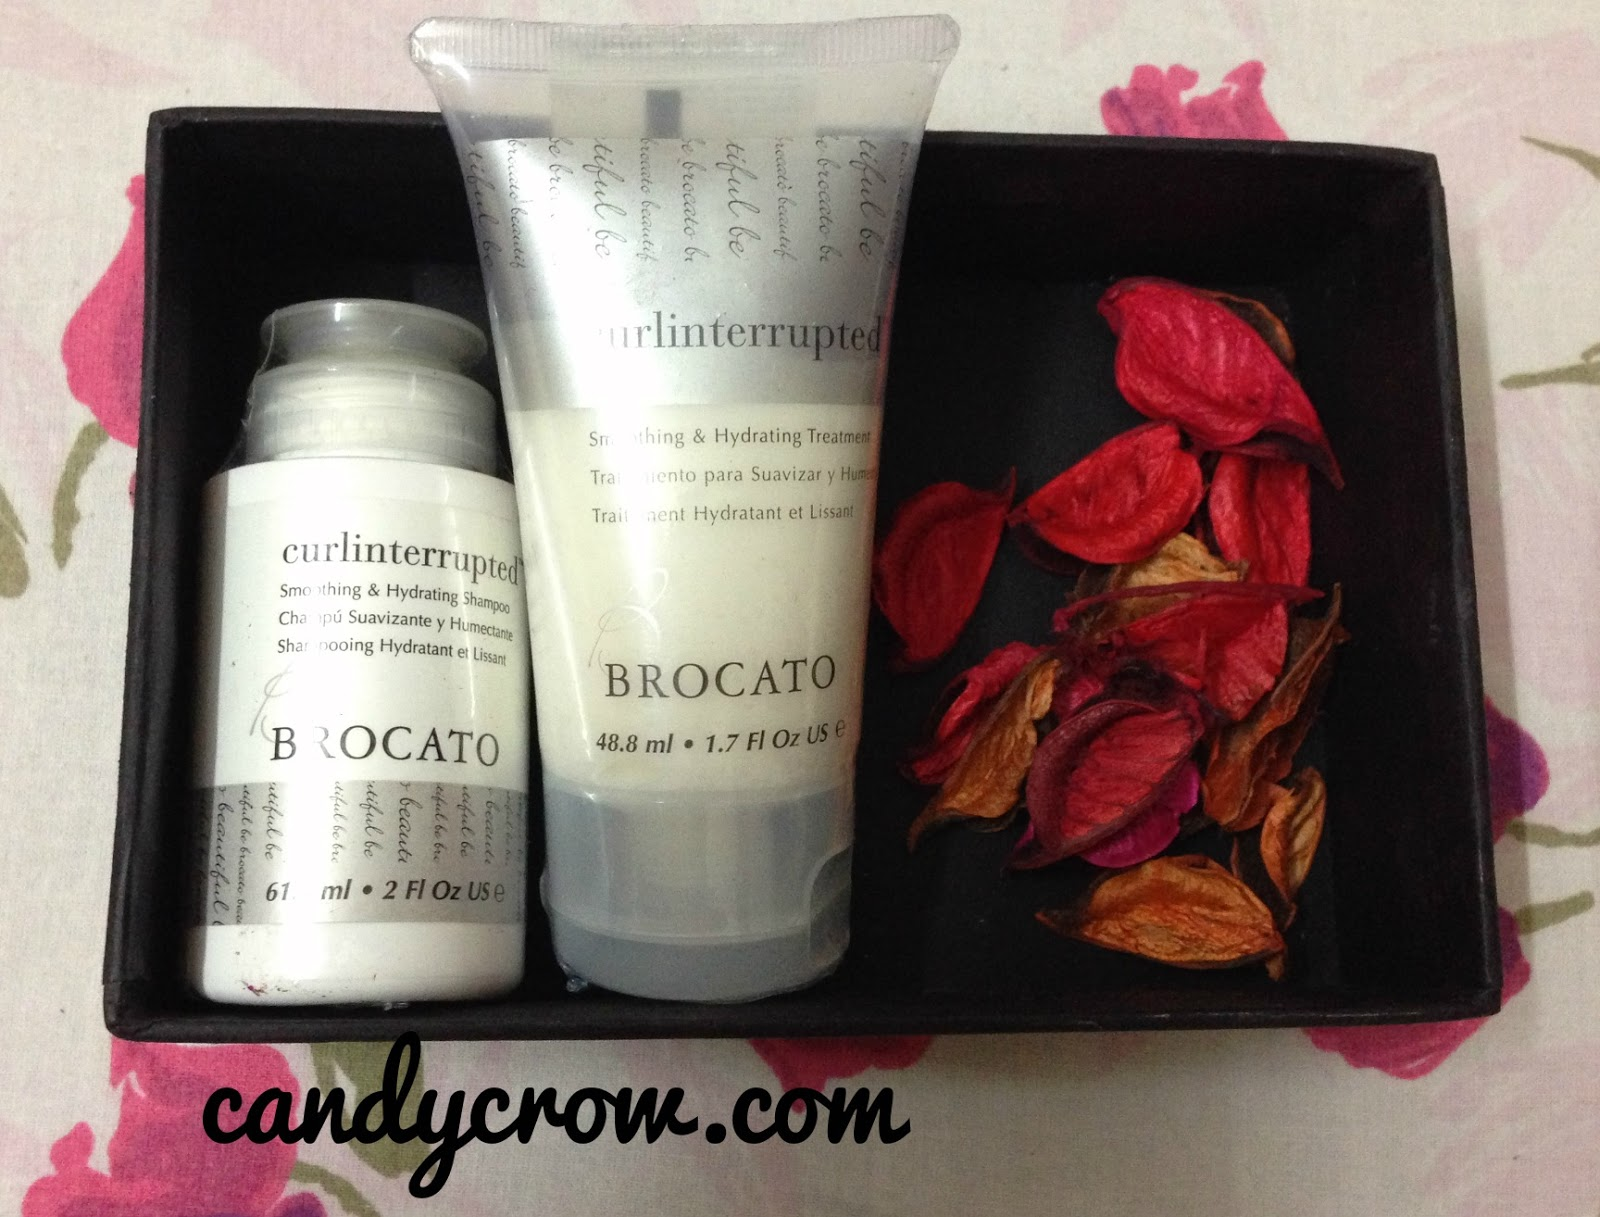 Brocato Curlinterrupted Shampoo review